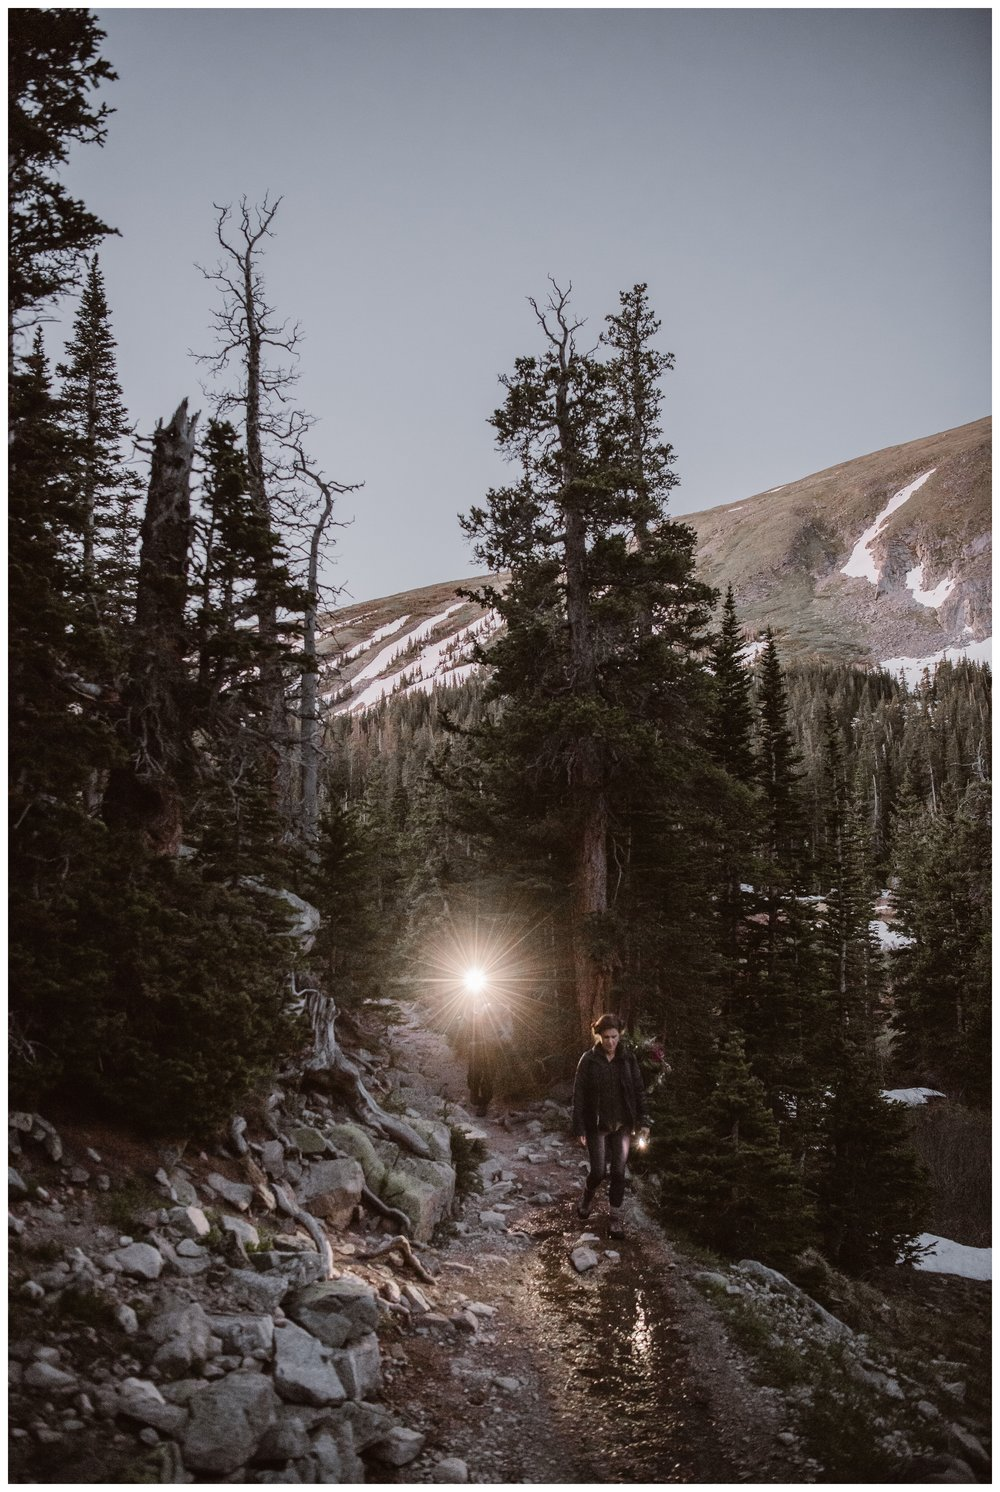 Headlamps provided much of the light as we hiked before dawn for Karen and Matt's adventure elopement wedding in Nederland, Colorado. Photo by Adventure Instead, Maddie Mae.